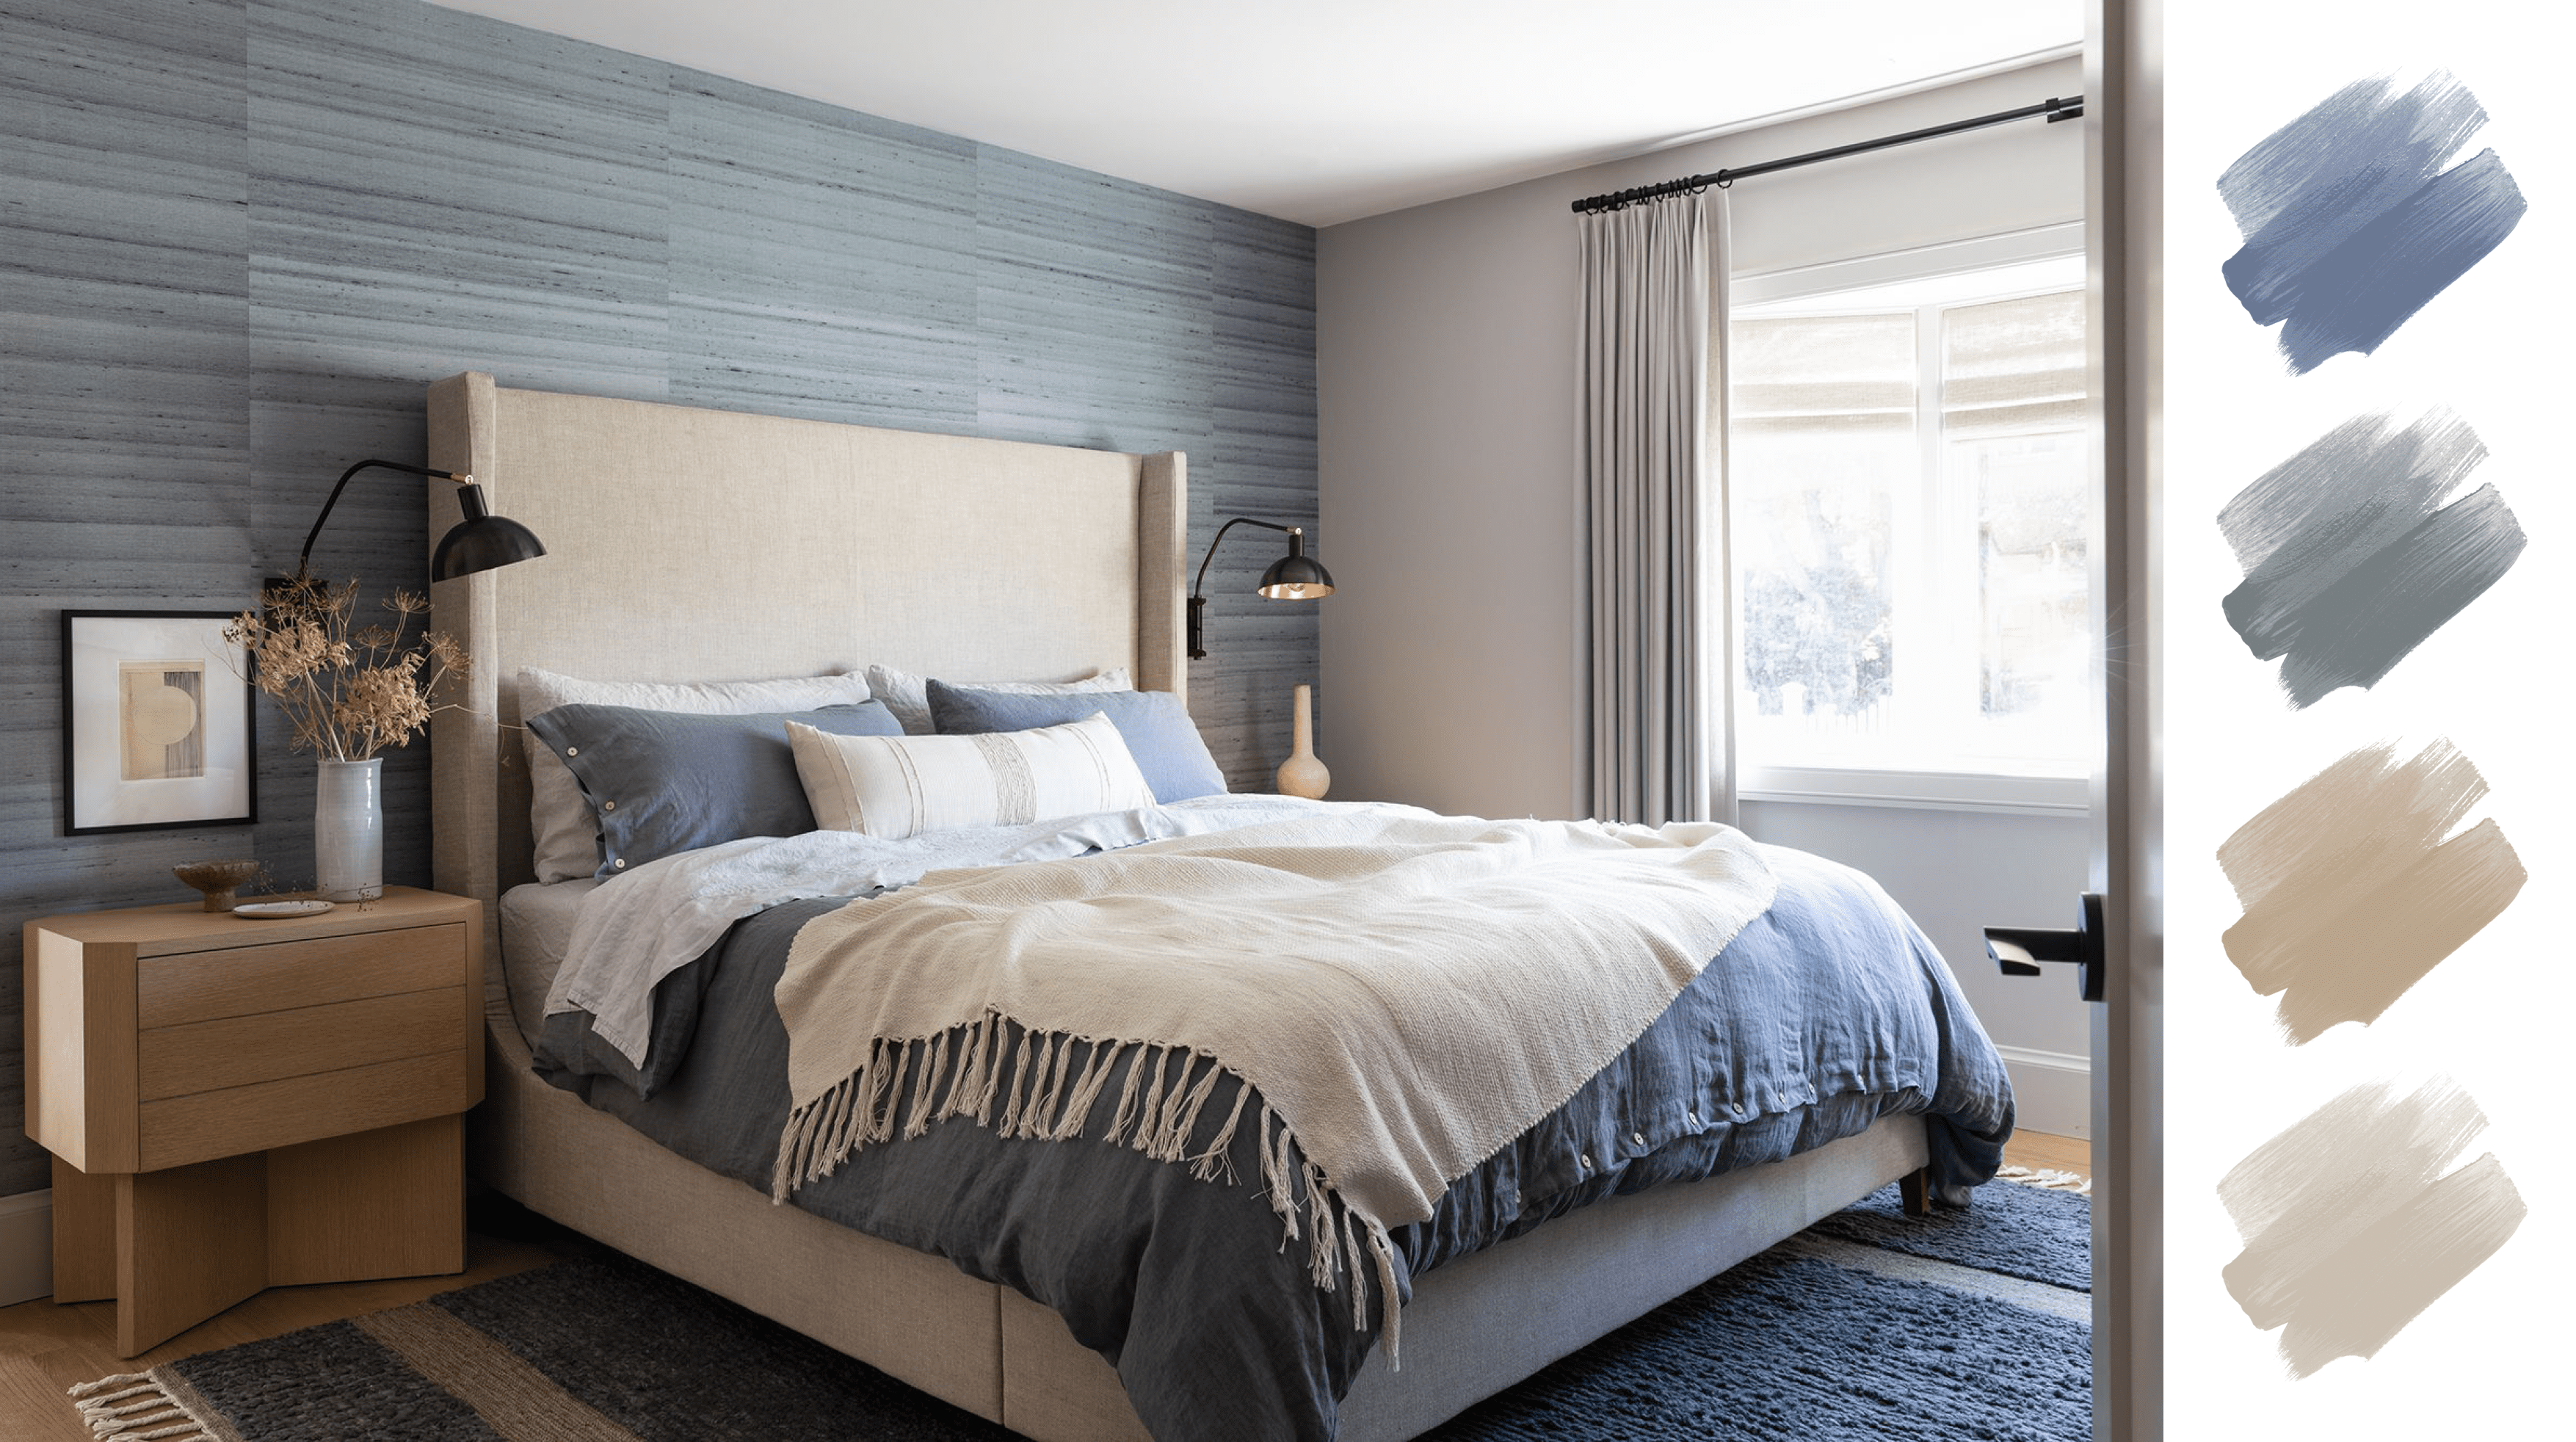 best home color palettes - blue, gray, white, tan bedroom